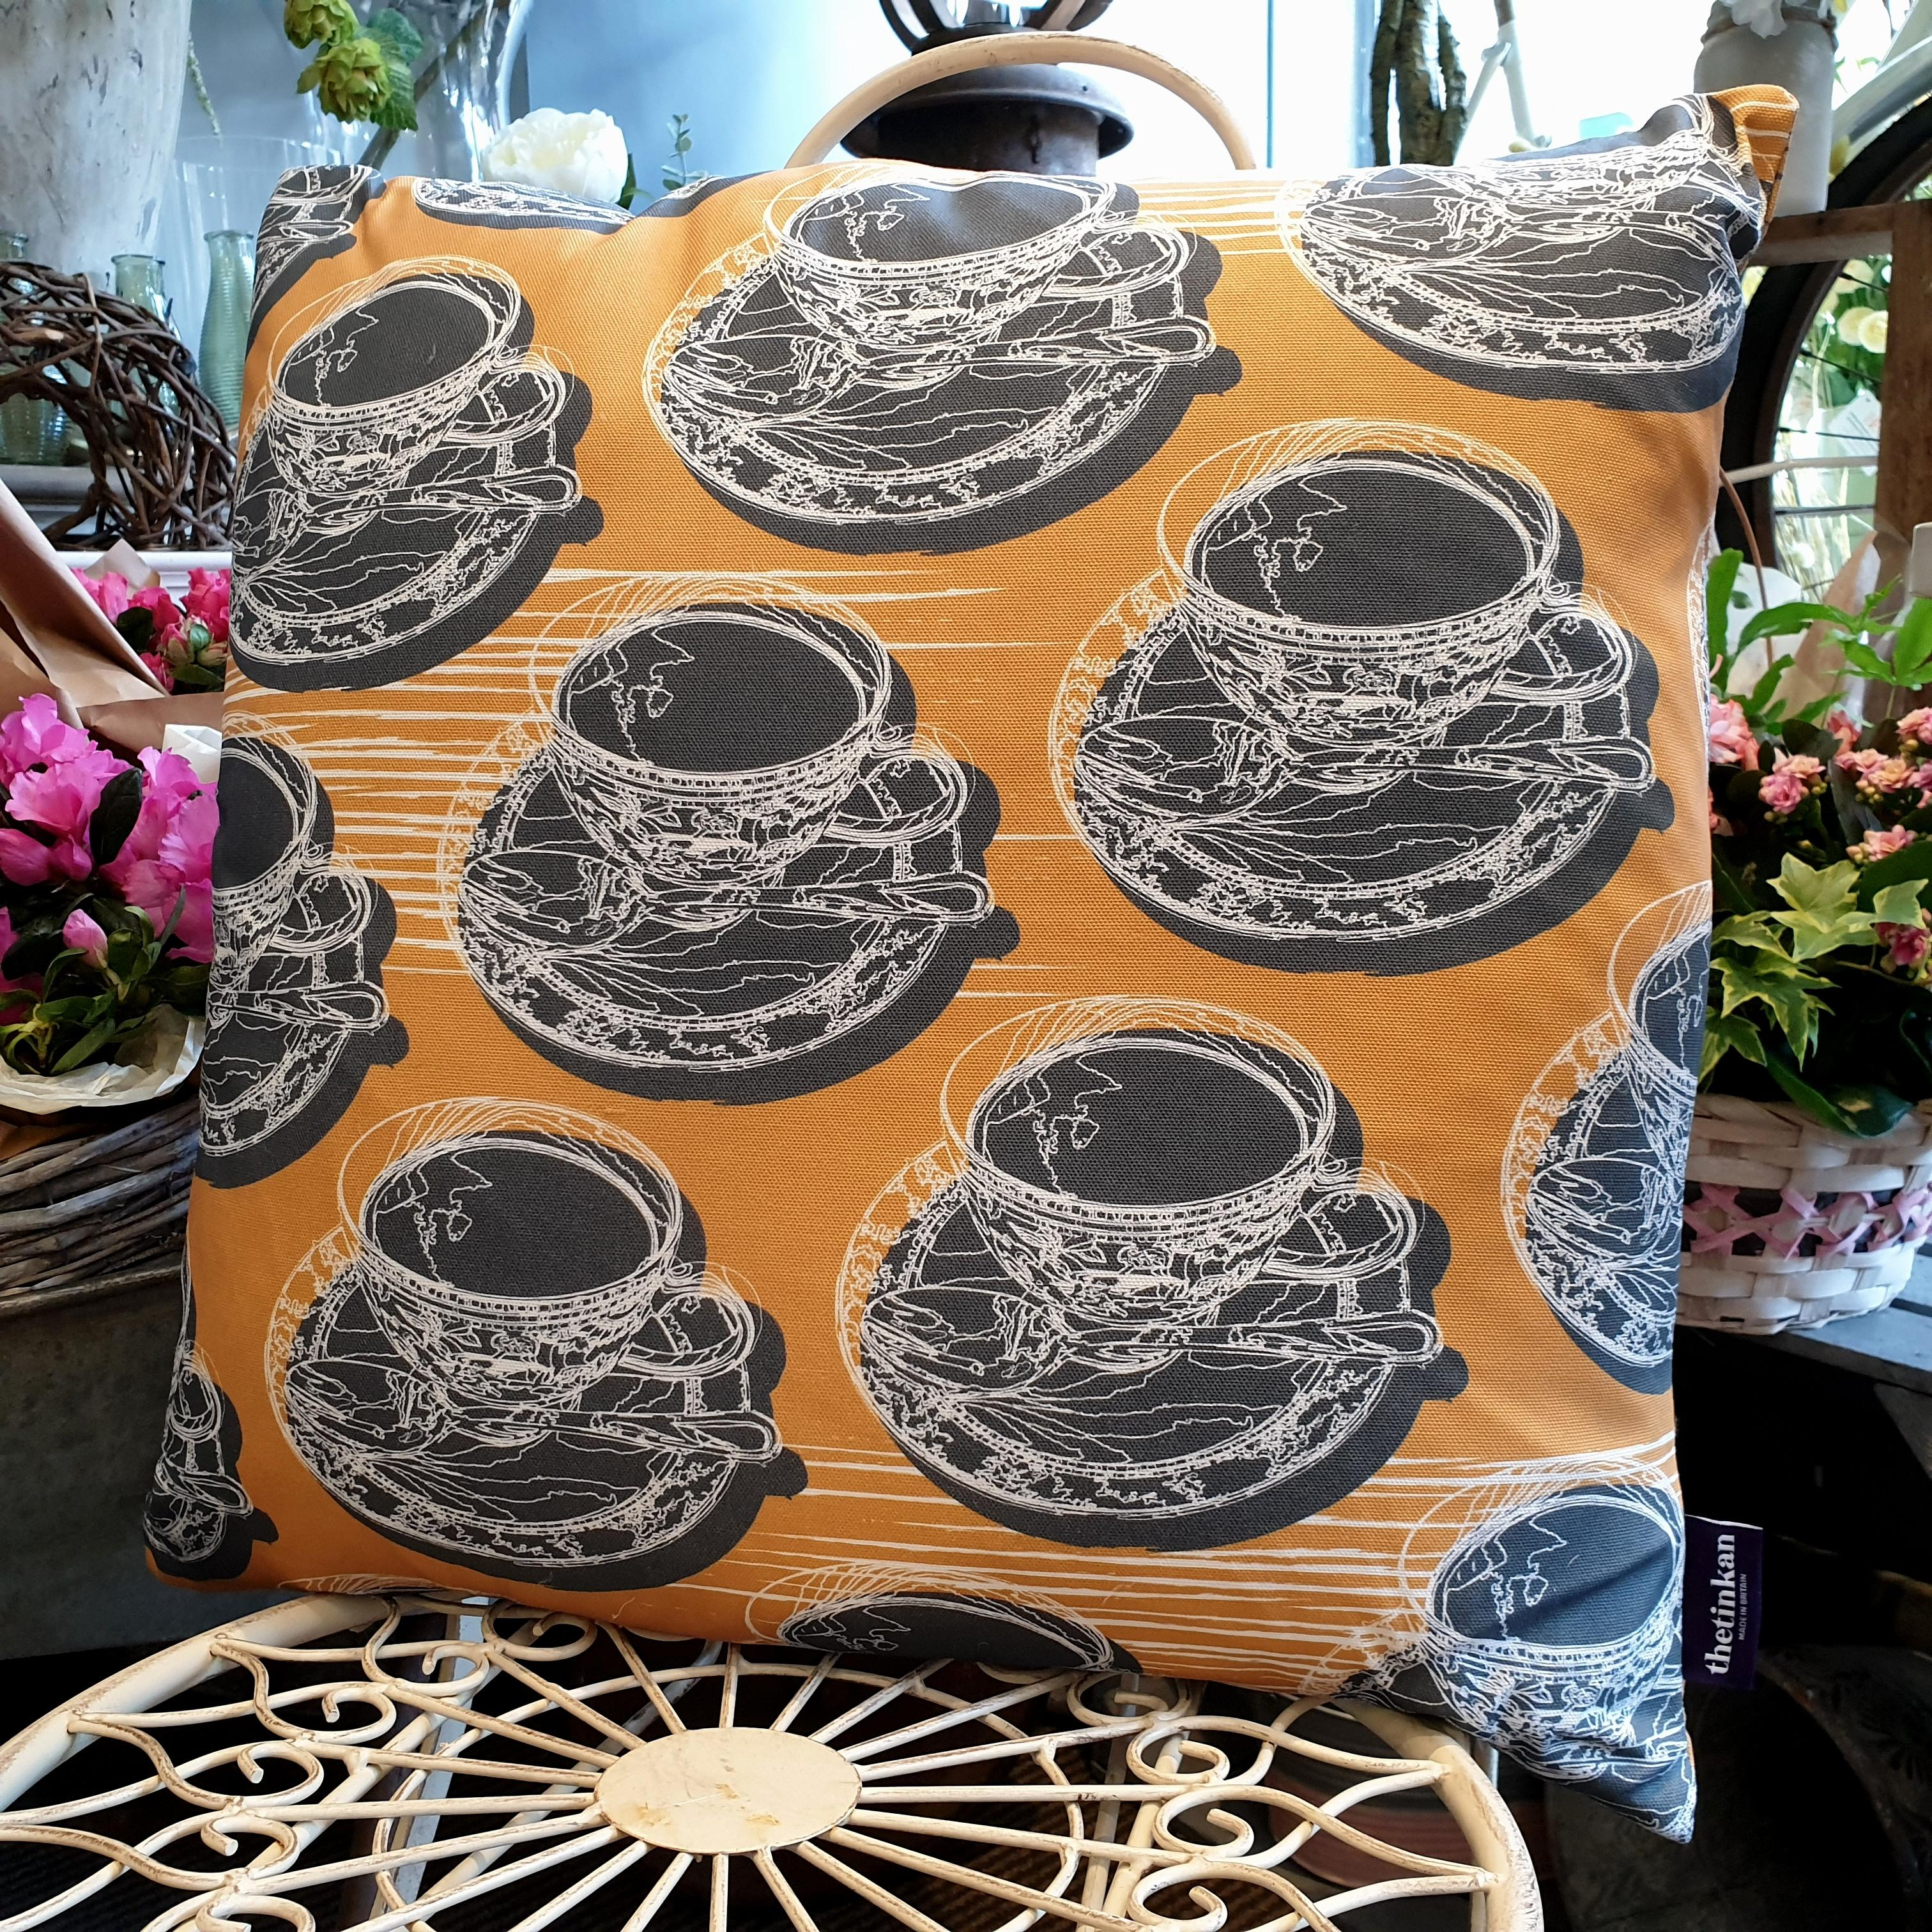 Double-sided mustard yellow 51cm square retro Afternoon Tea cushion with artistic white shards designed by thetinkan. White traced outline of multiple British teacups and saucers each colour filled in charcoal grey. Available with an optional luxury cushion inner pad. VIEW PRODUCT >>